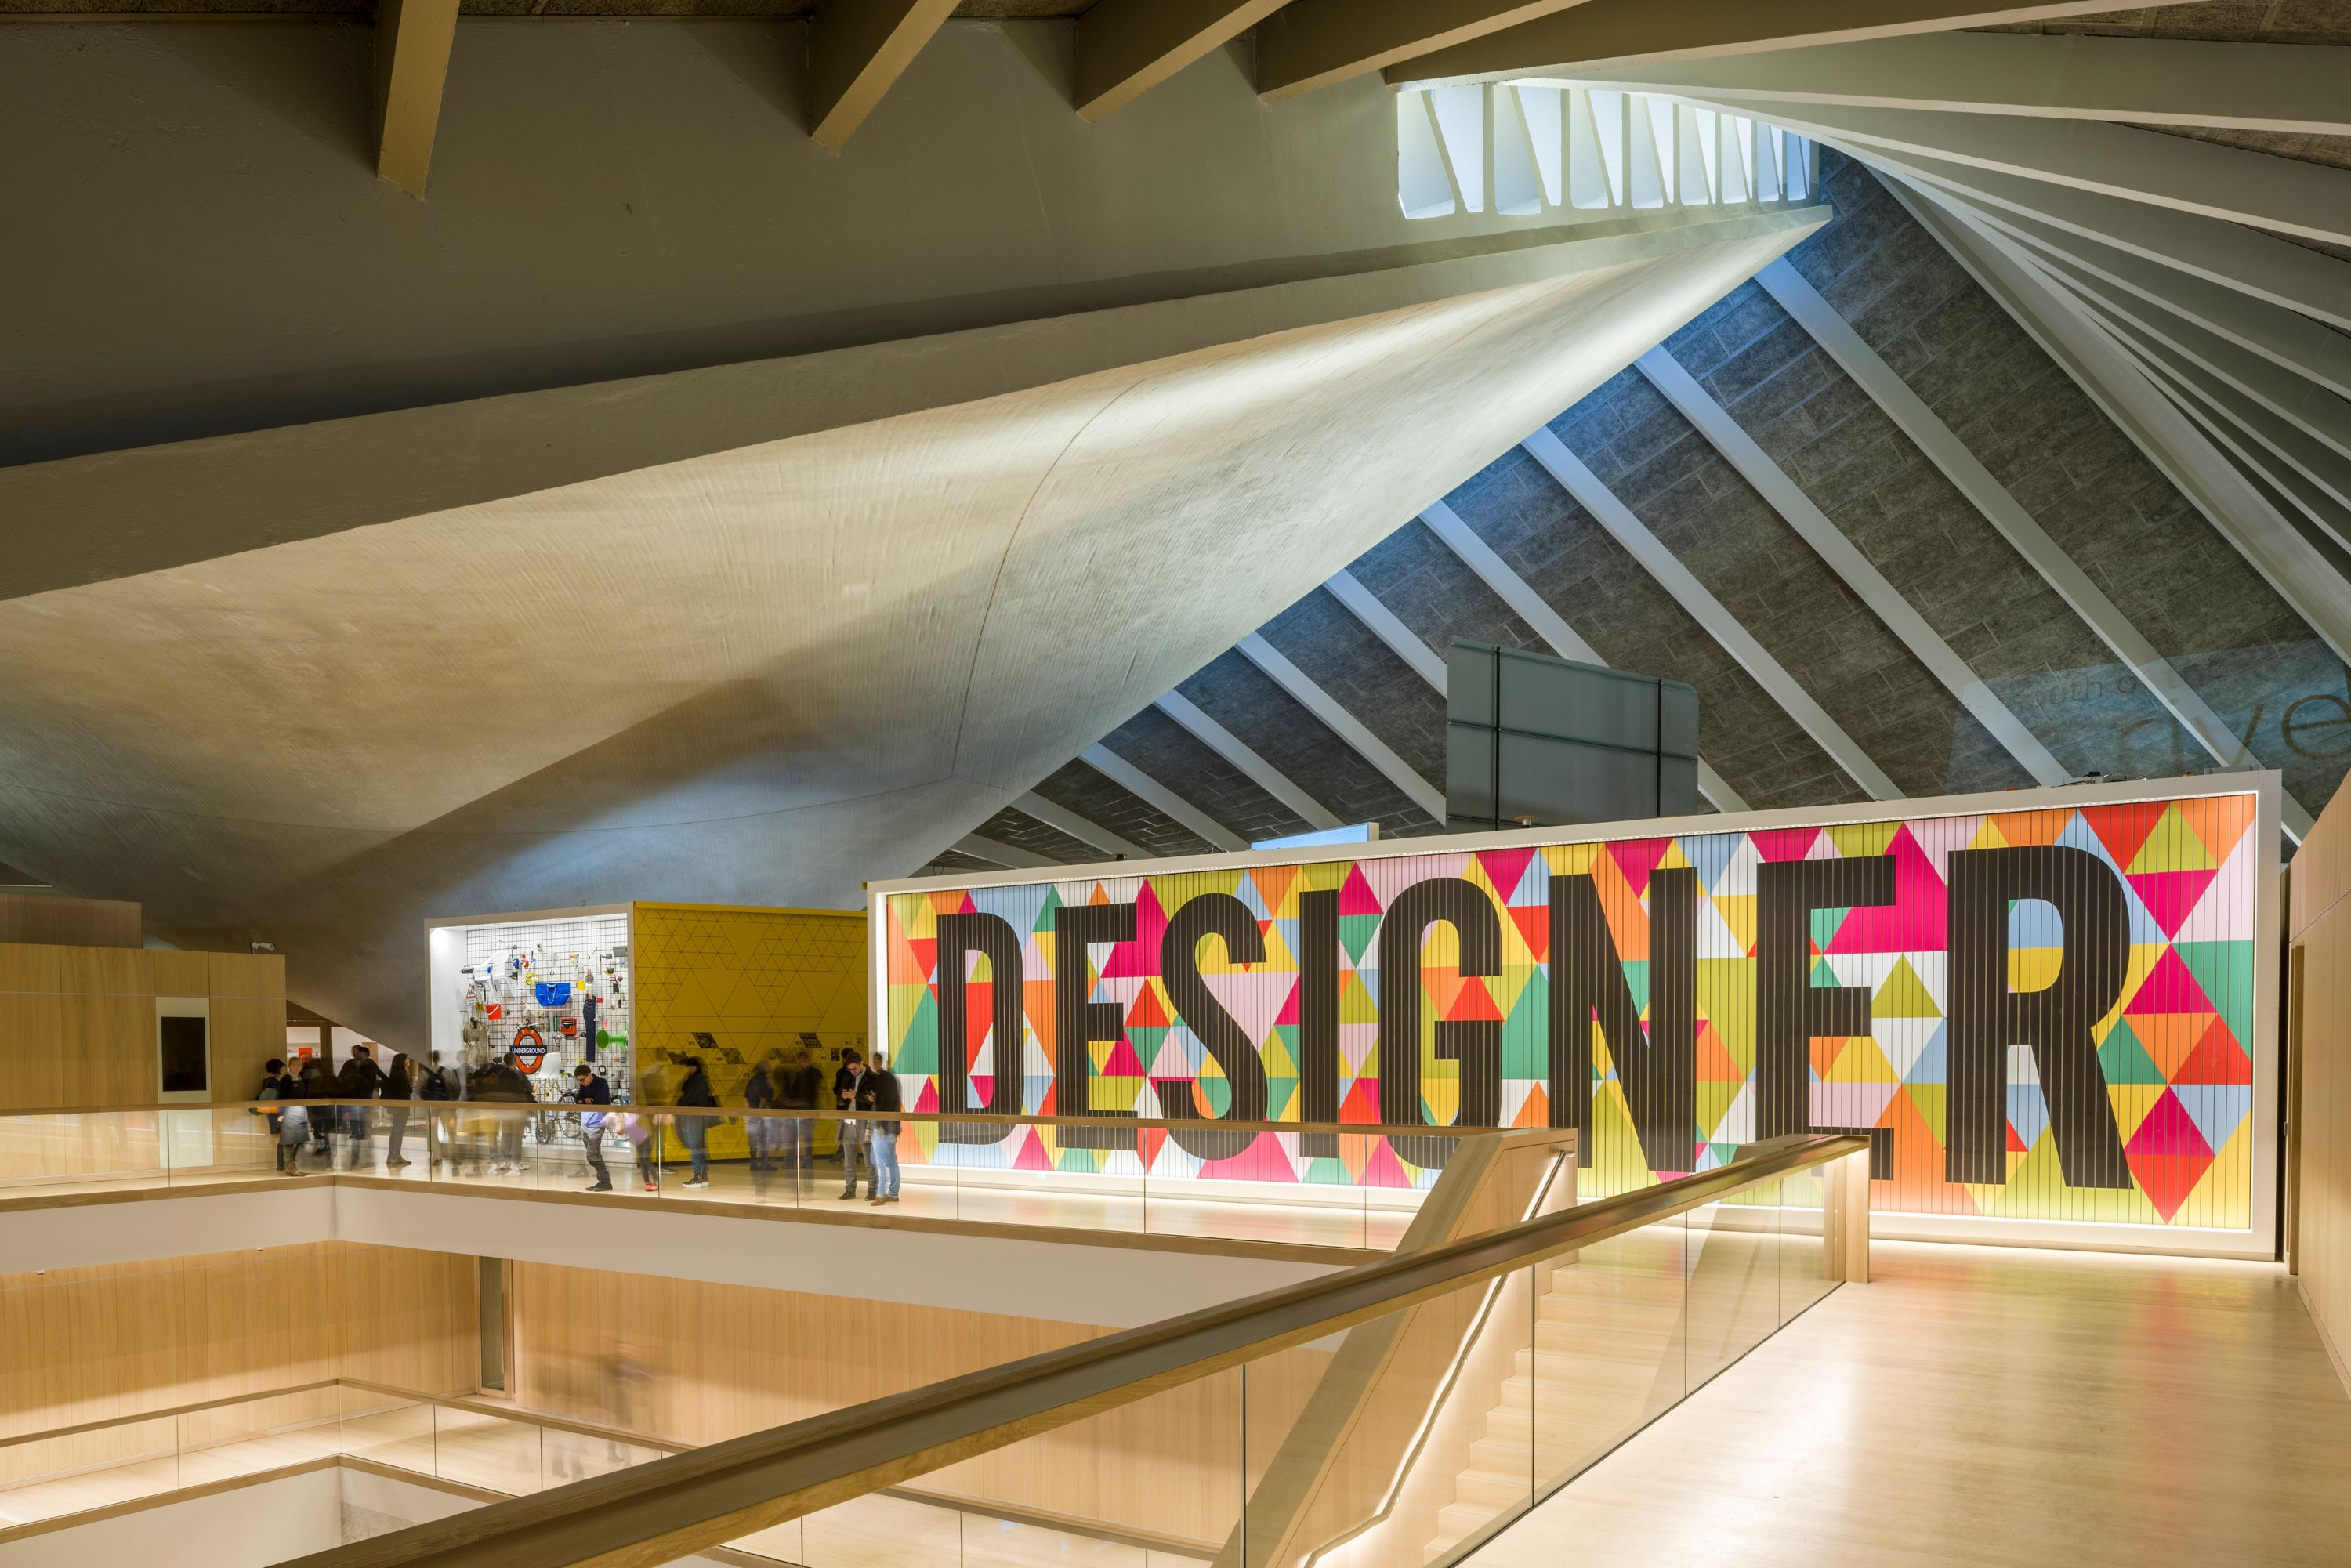 A part of Morag Myerscough's work at Design Museum's first permanent exhibition in London. Image: Courtesy Morag Myerscough